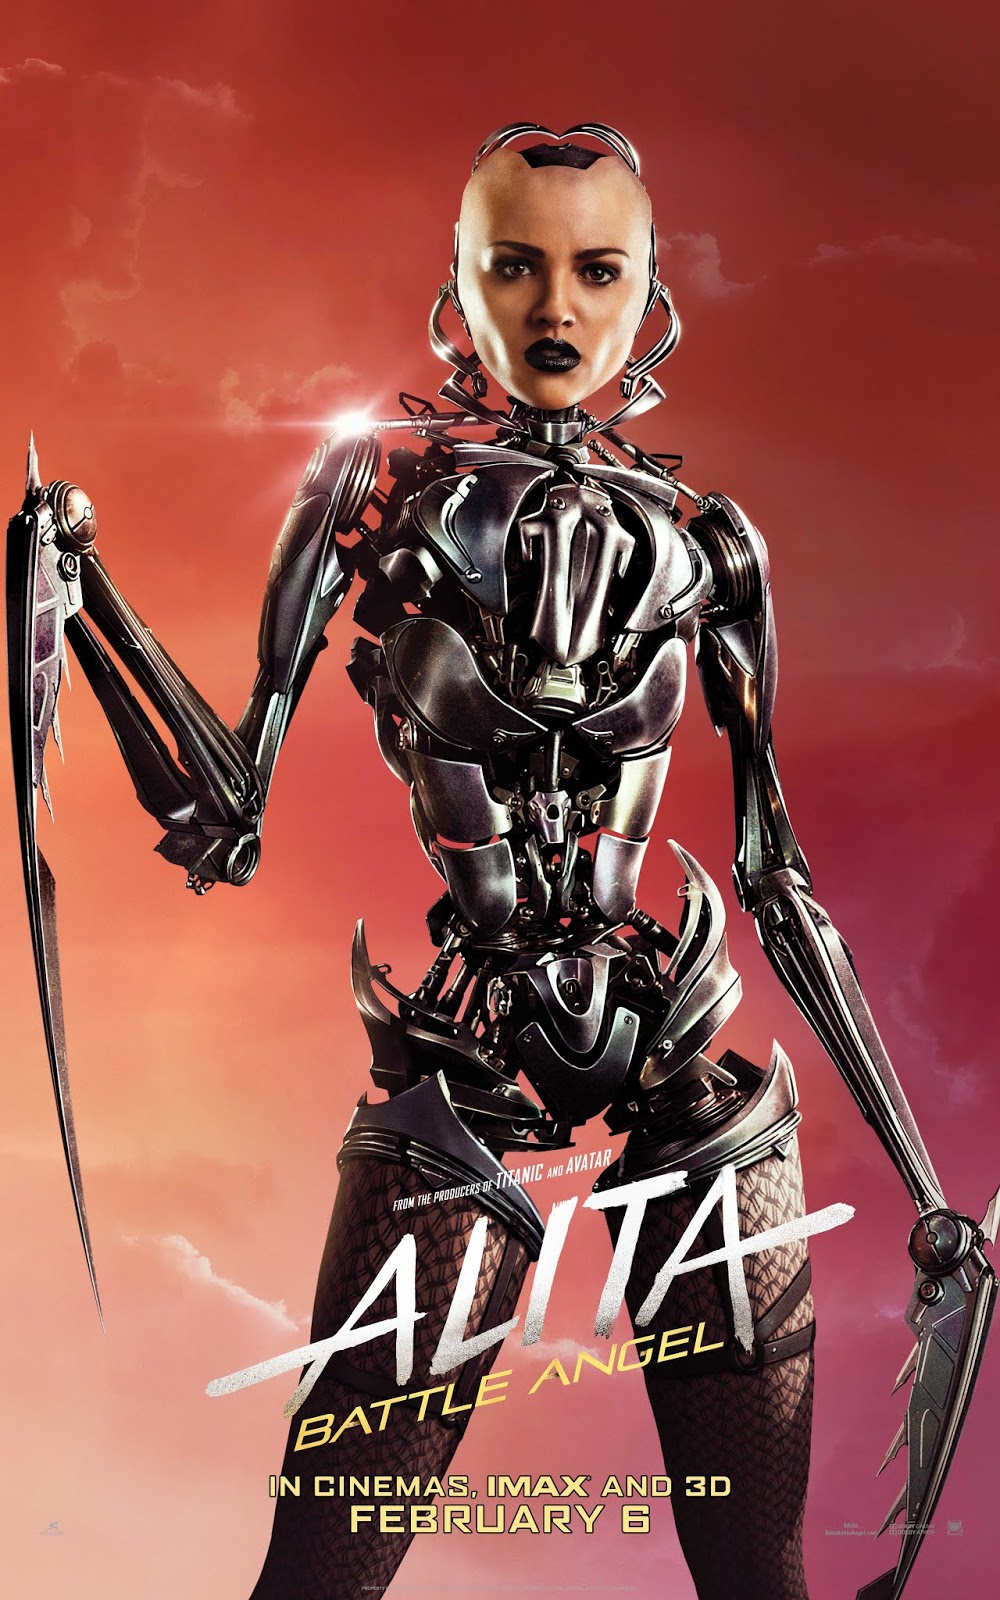 ALITA: BATTLE ANGEL CHARACTER POSTER